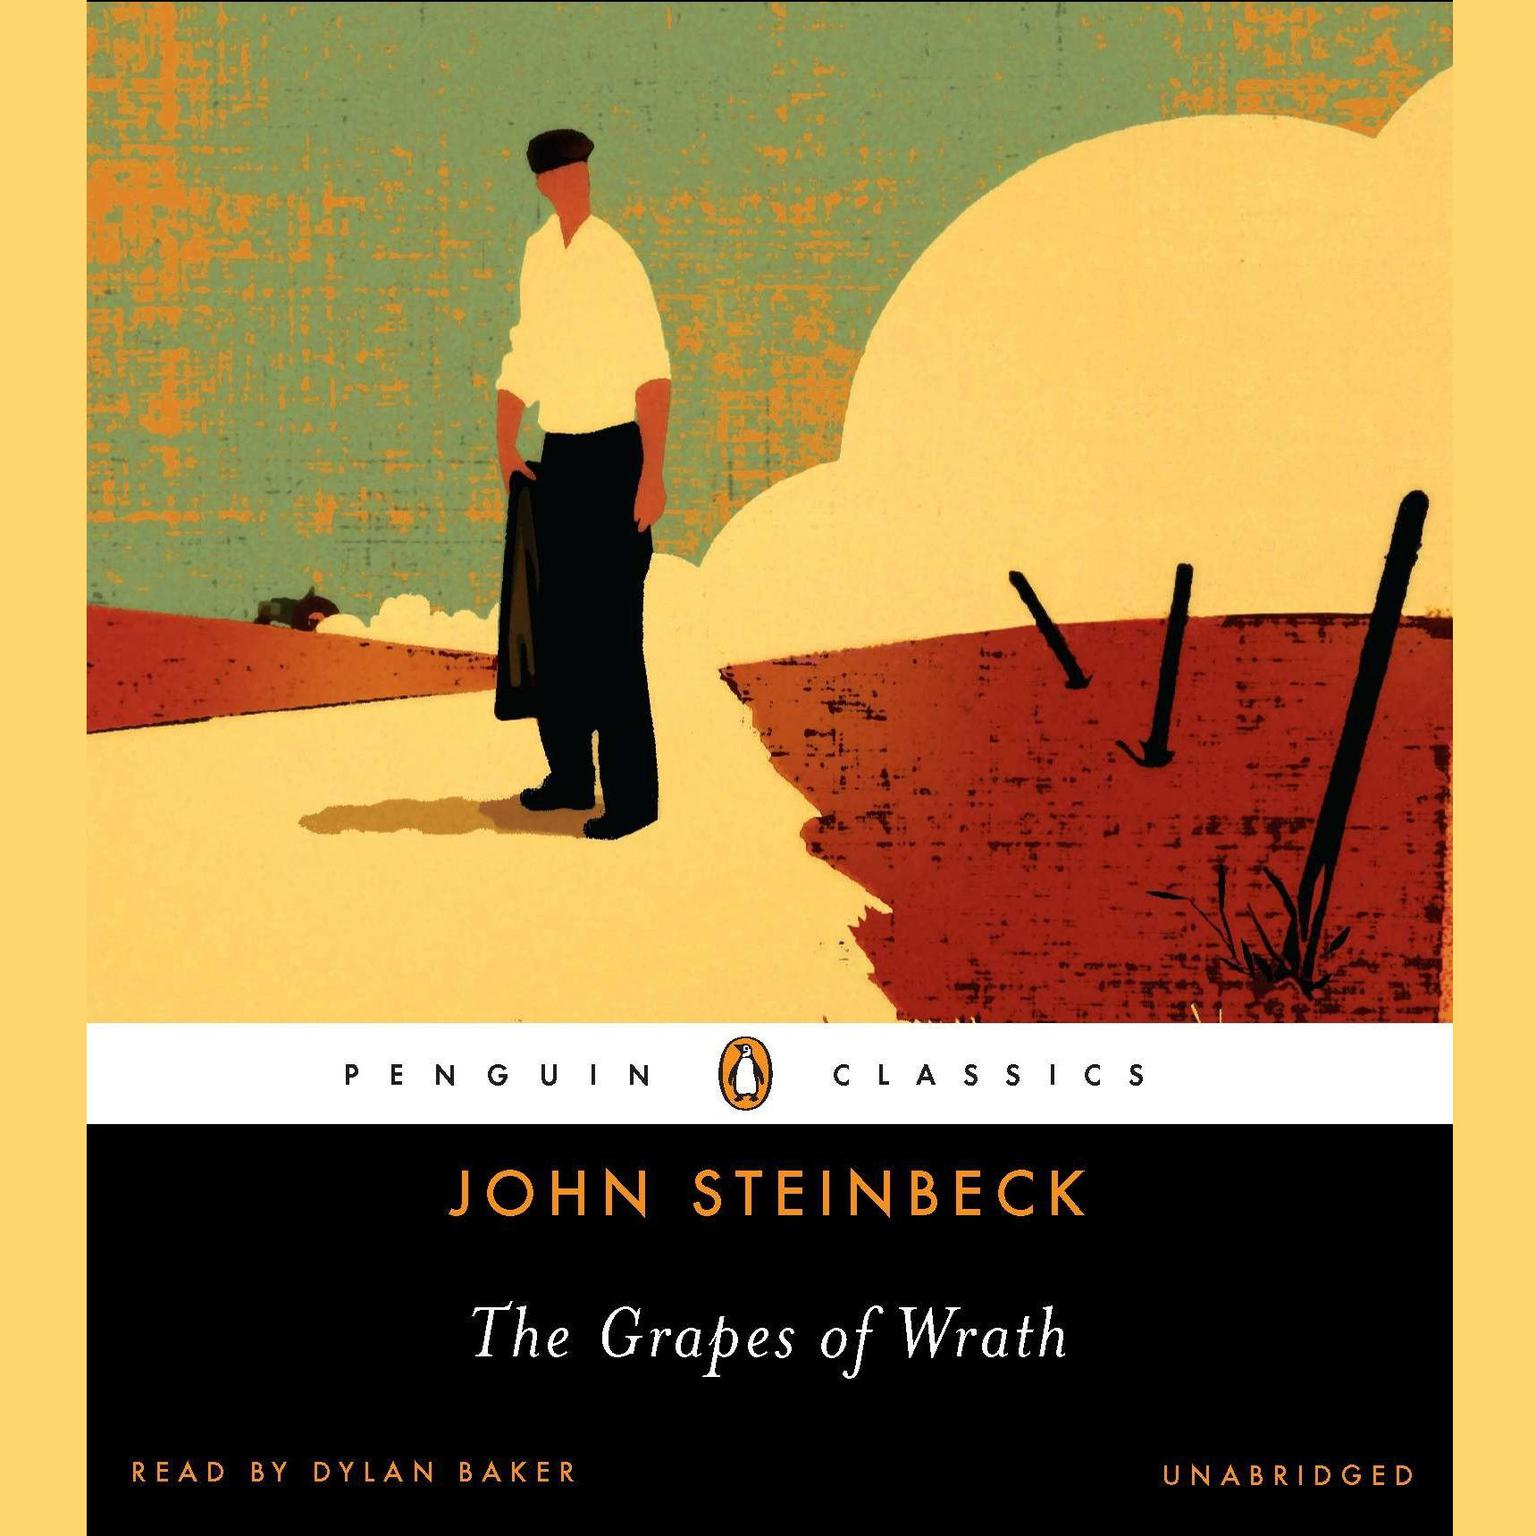 the portrayal of depression in the 1930s in the grapes of wrath by john steinbeck When the grapes of wrath appeared, it soared to the top of the bestseller lists, selling nearly half a million copies although many oklahomans and californians reviled the book, considering steinbeck's characters to be unflattering representations of their states' people, the large majority of readers and scholars praised the novel highly.